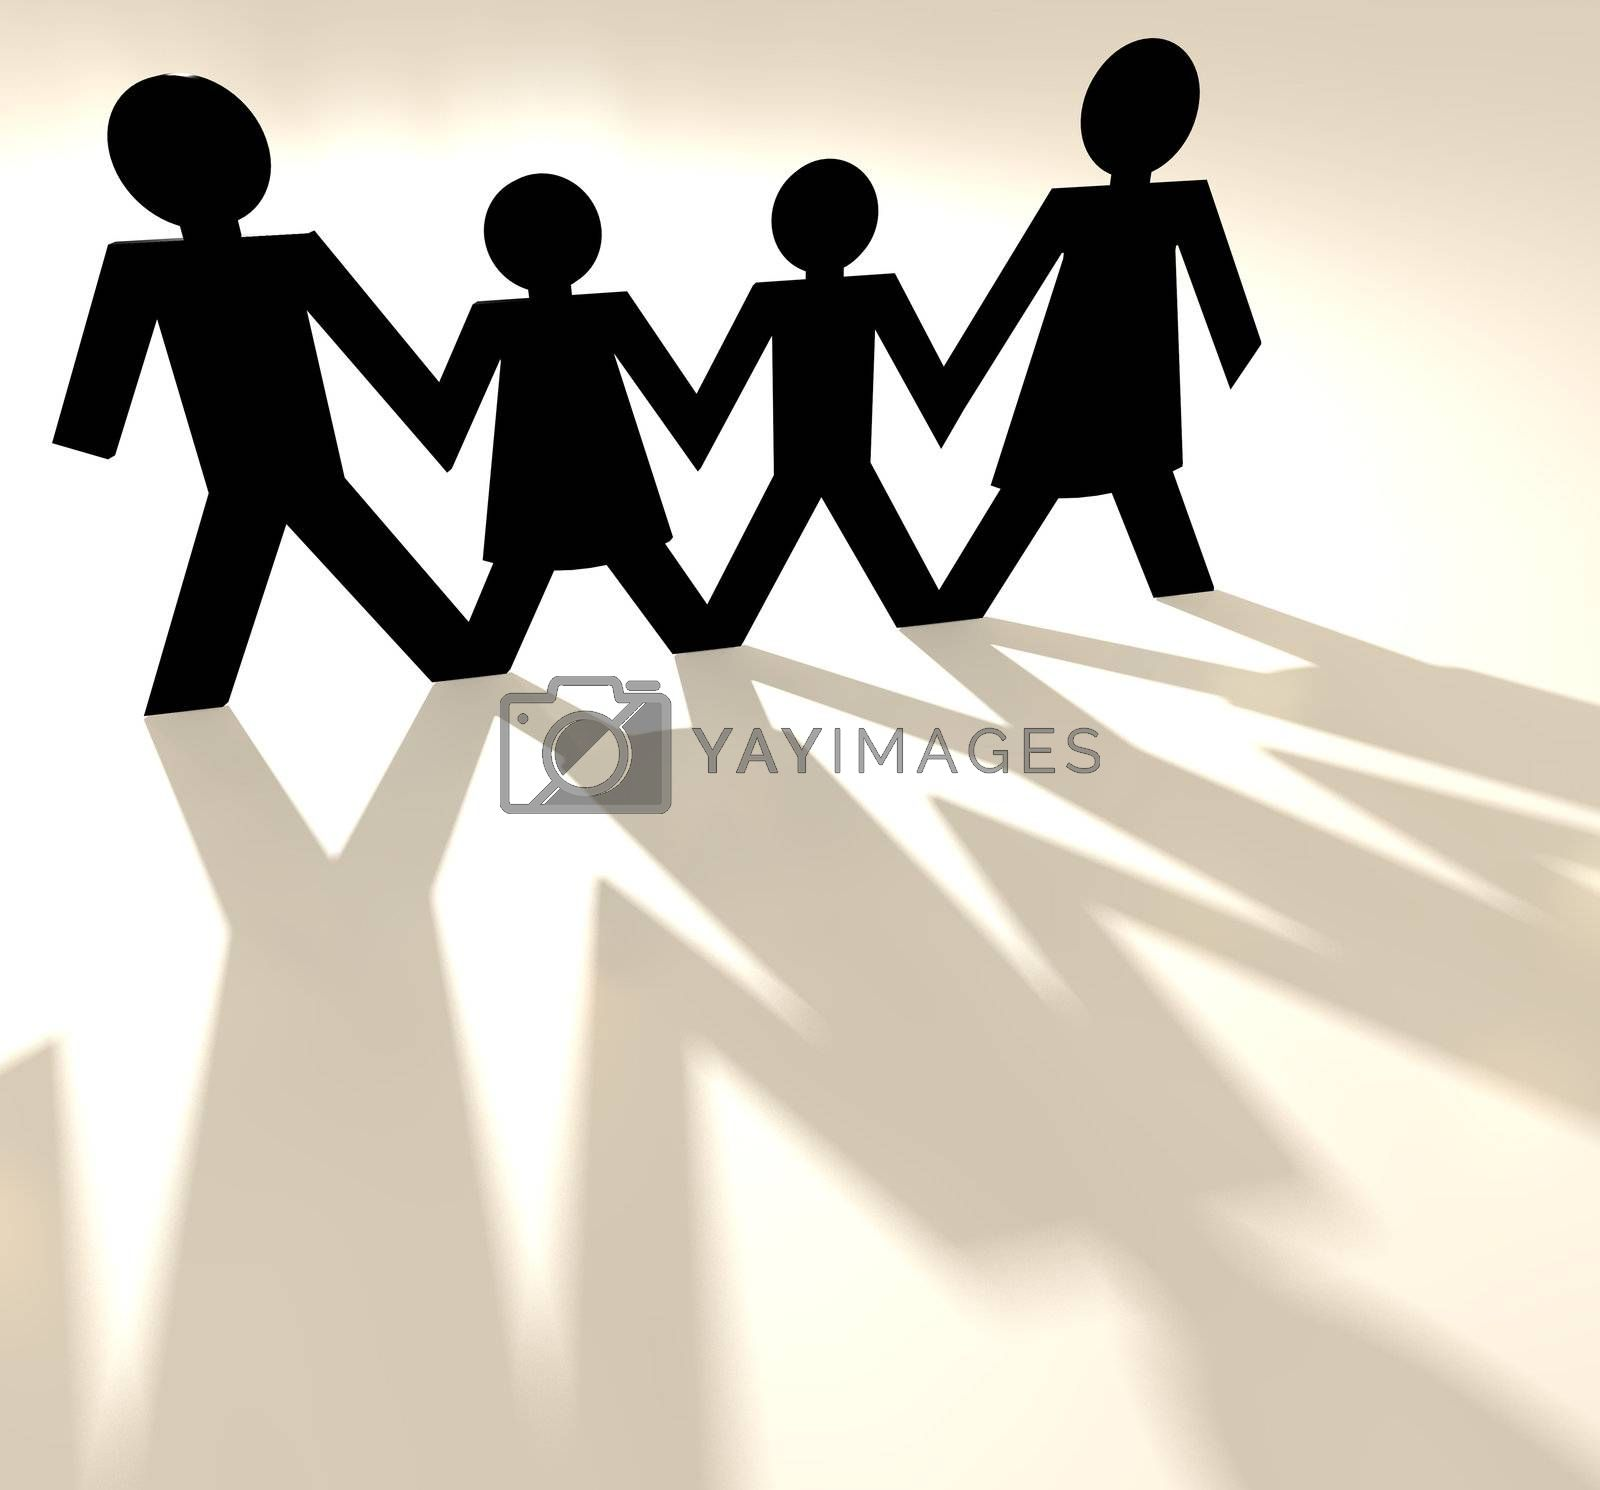 Four people family group holding hands as paper cut out